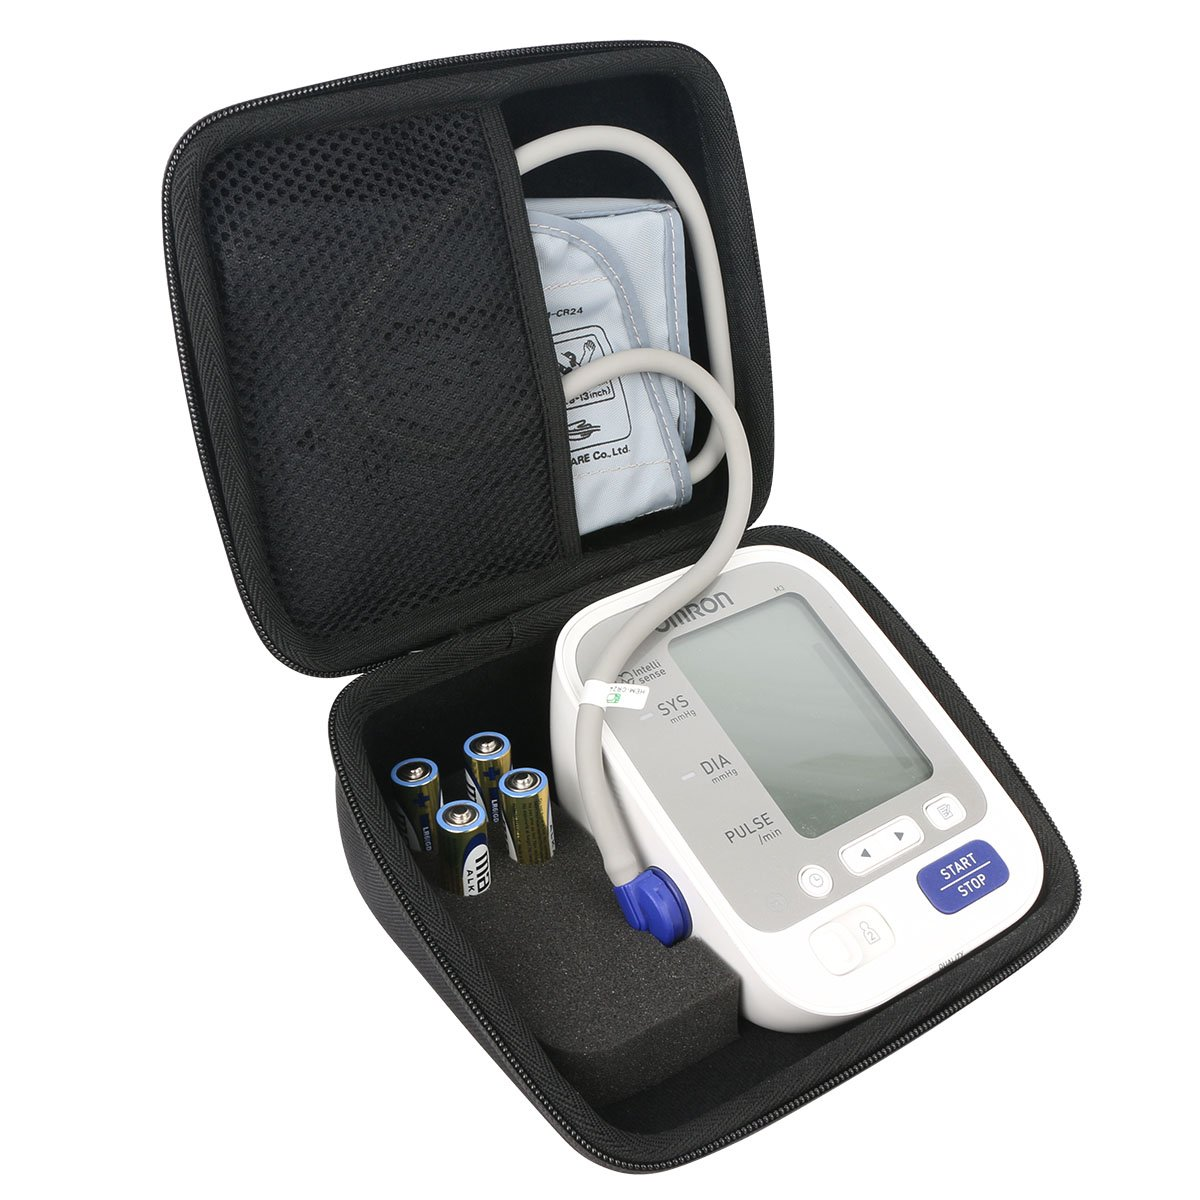 for Omron BP742N 5 Series Upper Arm Blood Pressure Monitor Carrying Case by Khanka